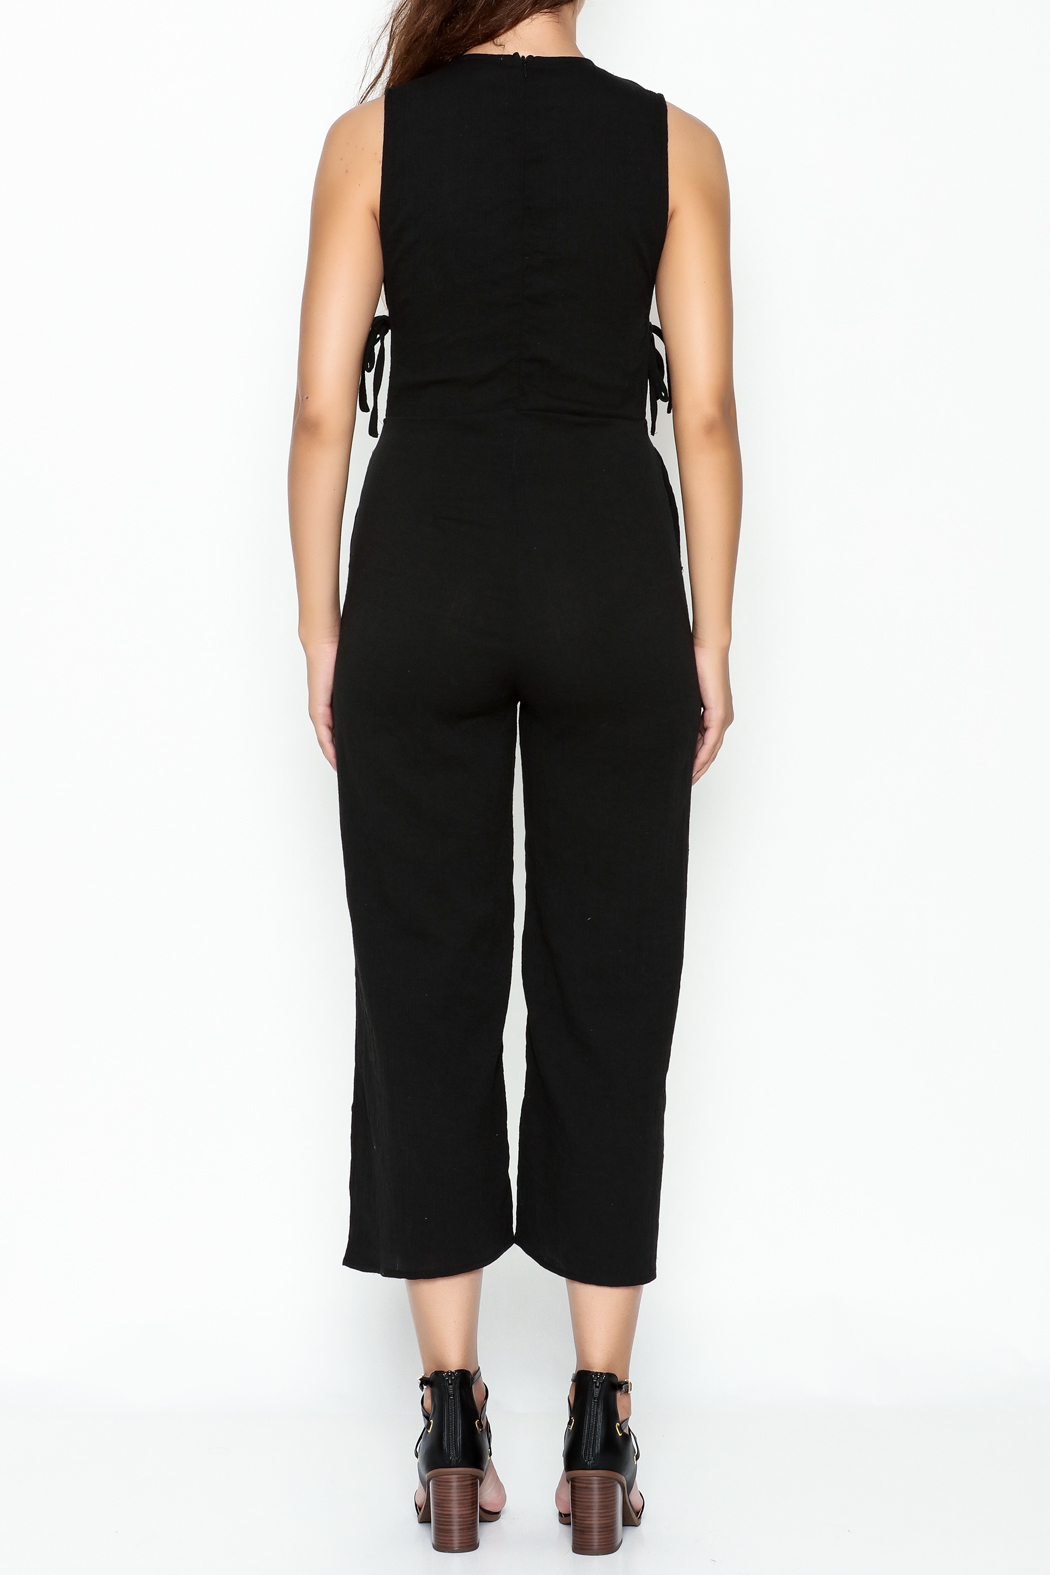 lucca couture Black Side Tie Jumpsuit - Back Cropped Image